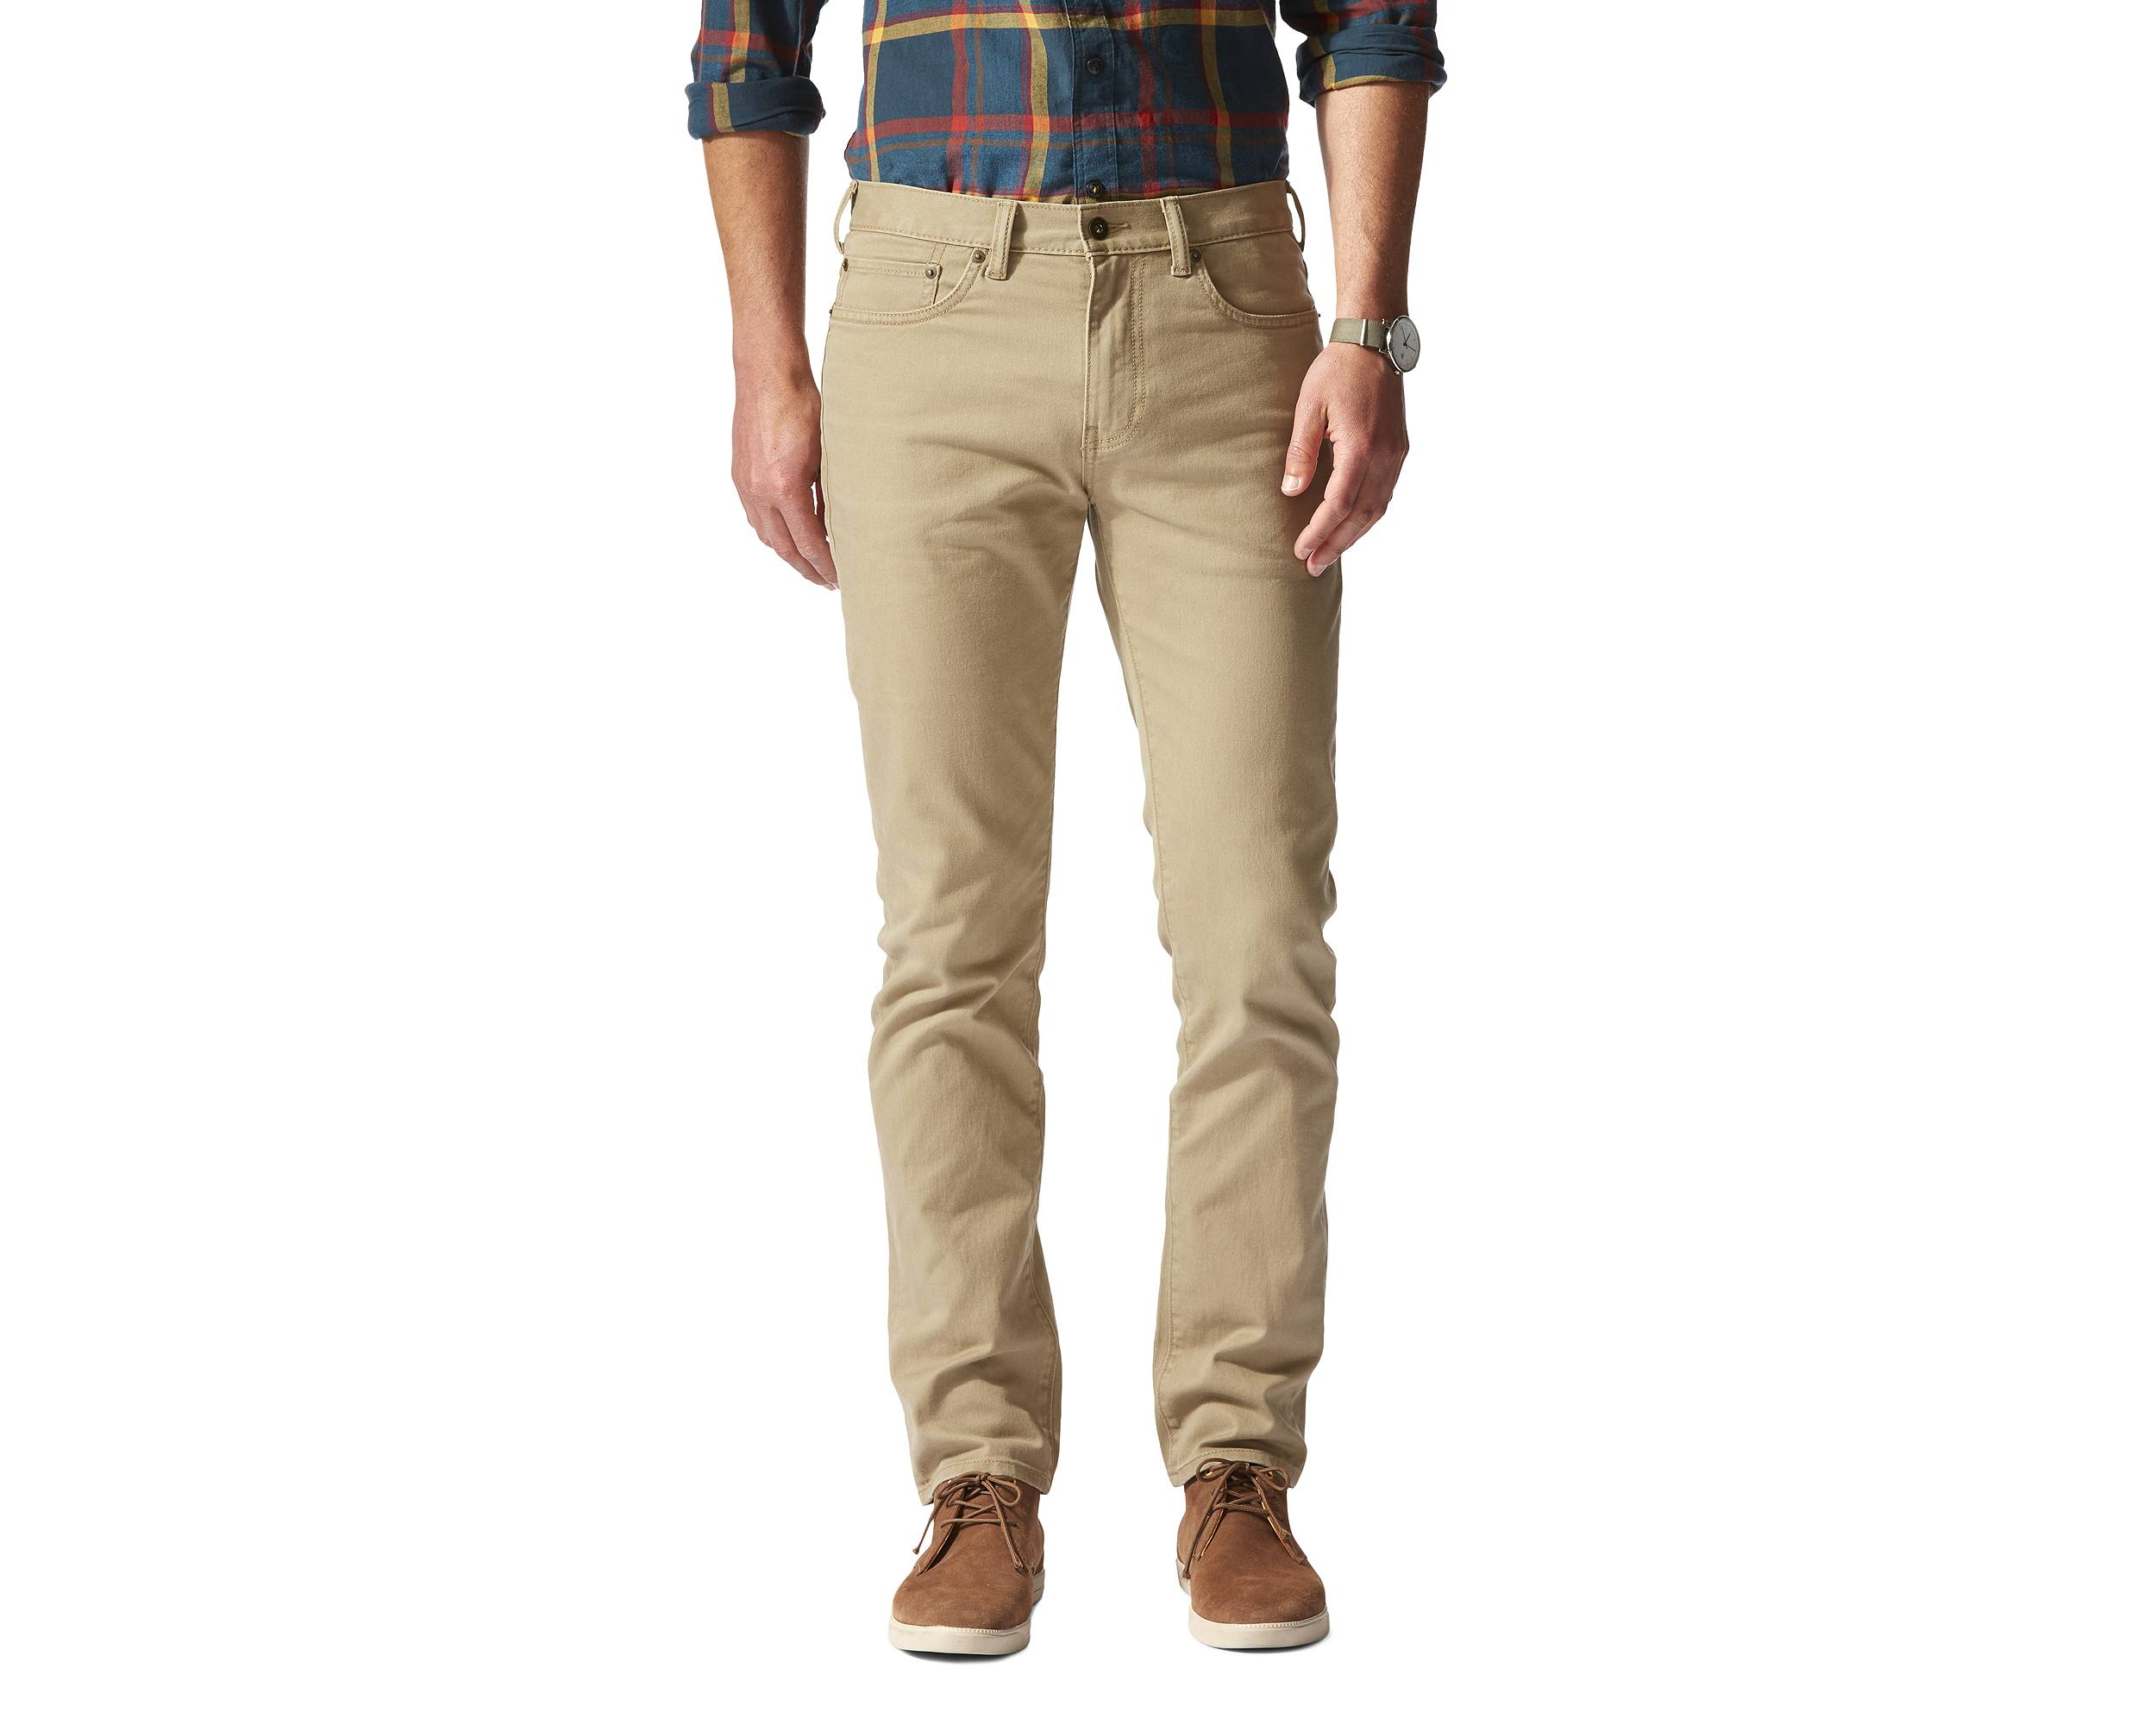 Foolproof guide on how to buy khaki jeans